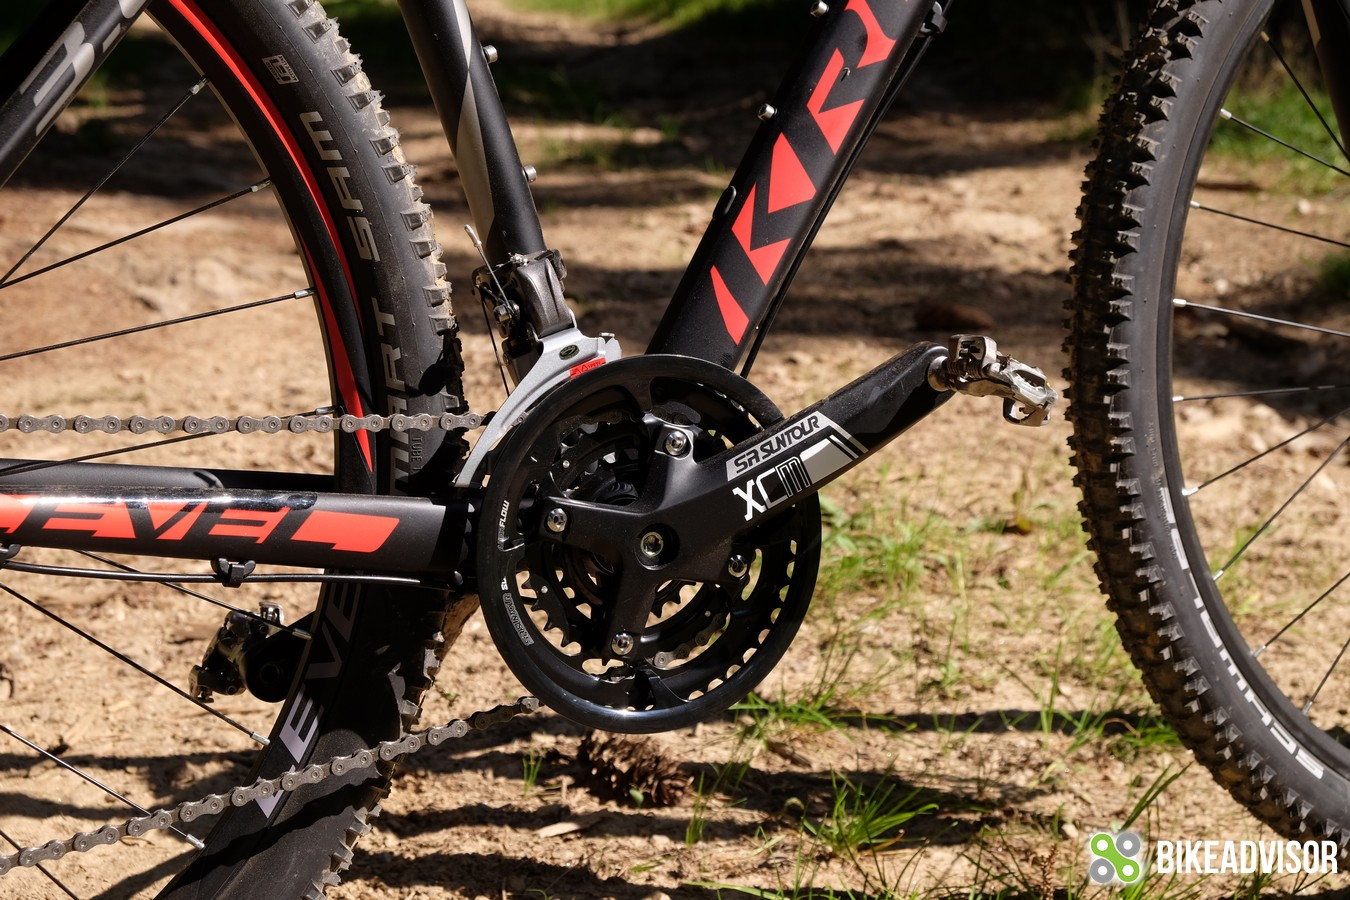 19 Inch Tires >> Kross Level 3.0 (2018): balanced for both climbs and descents